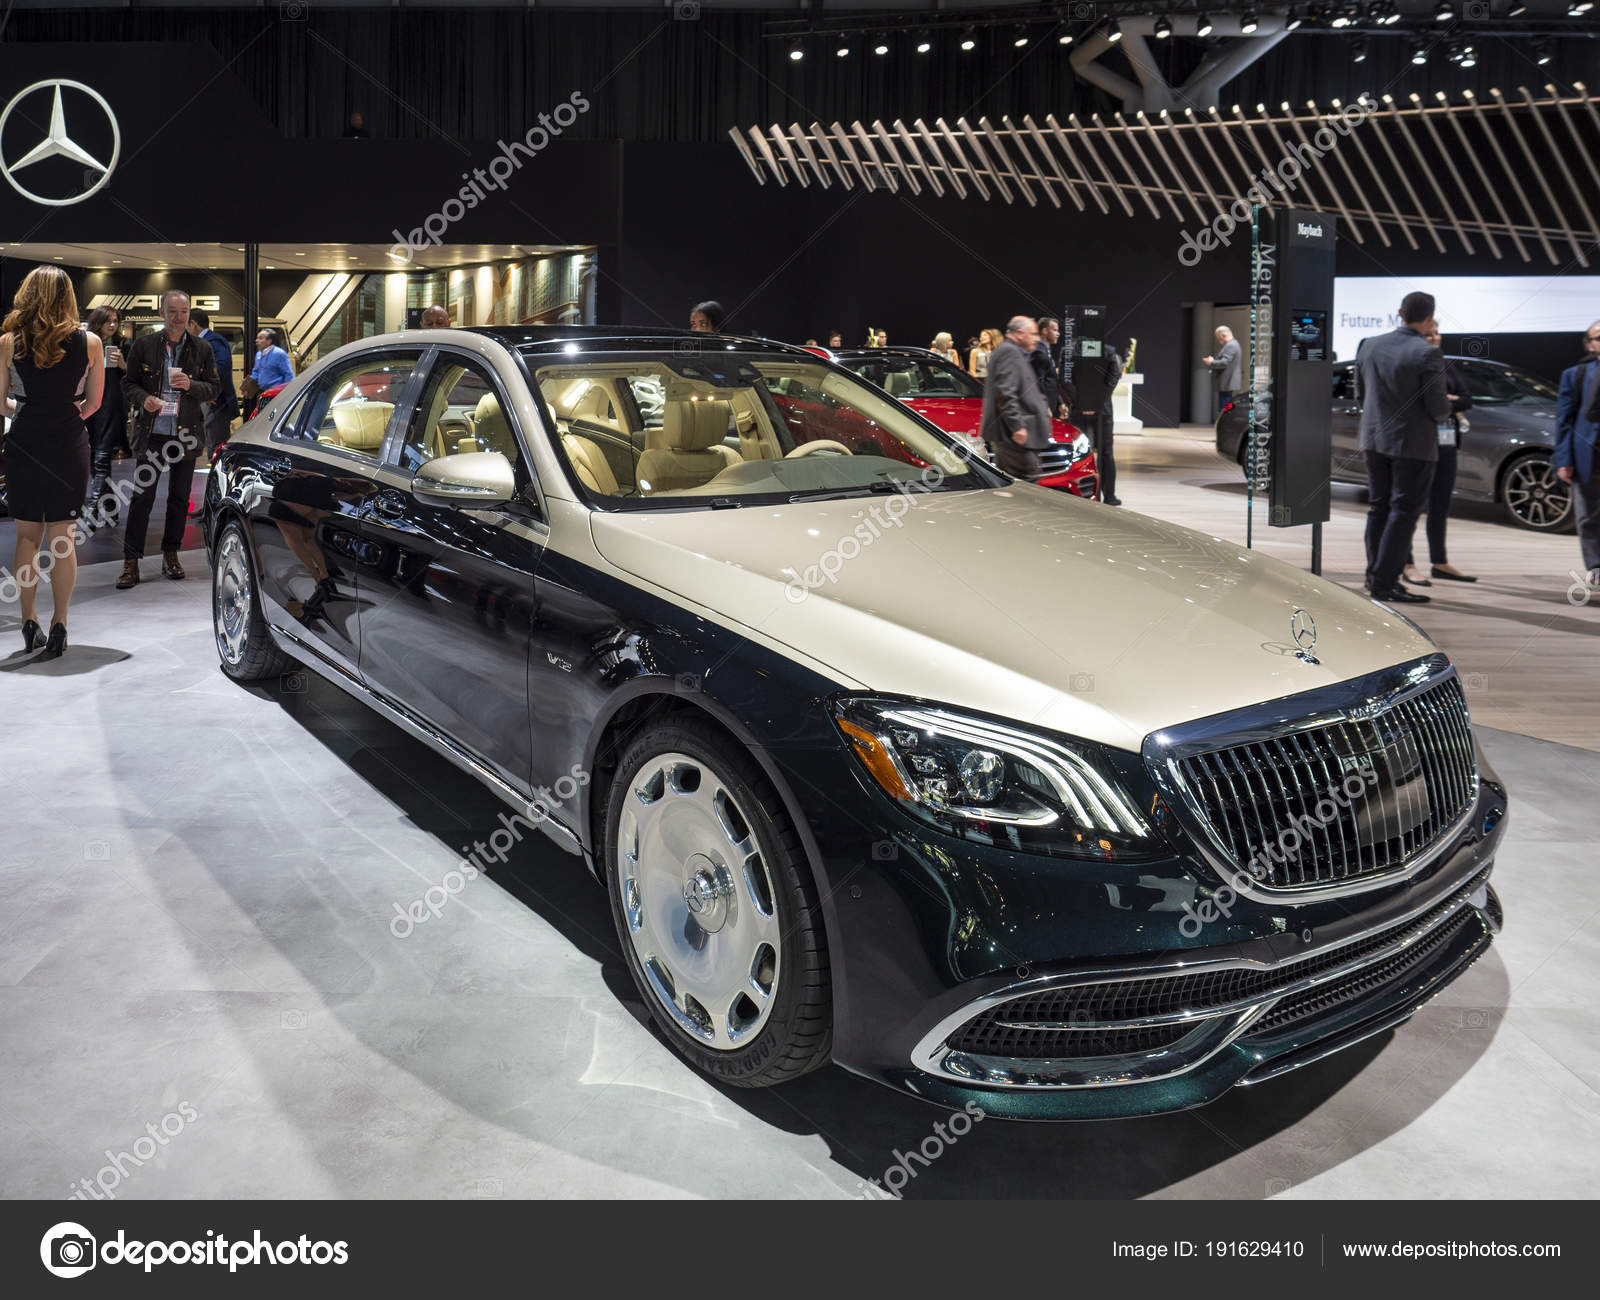 mercedes-maybach s-klasse limousine auf der new york international